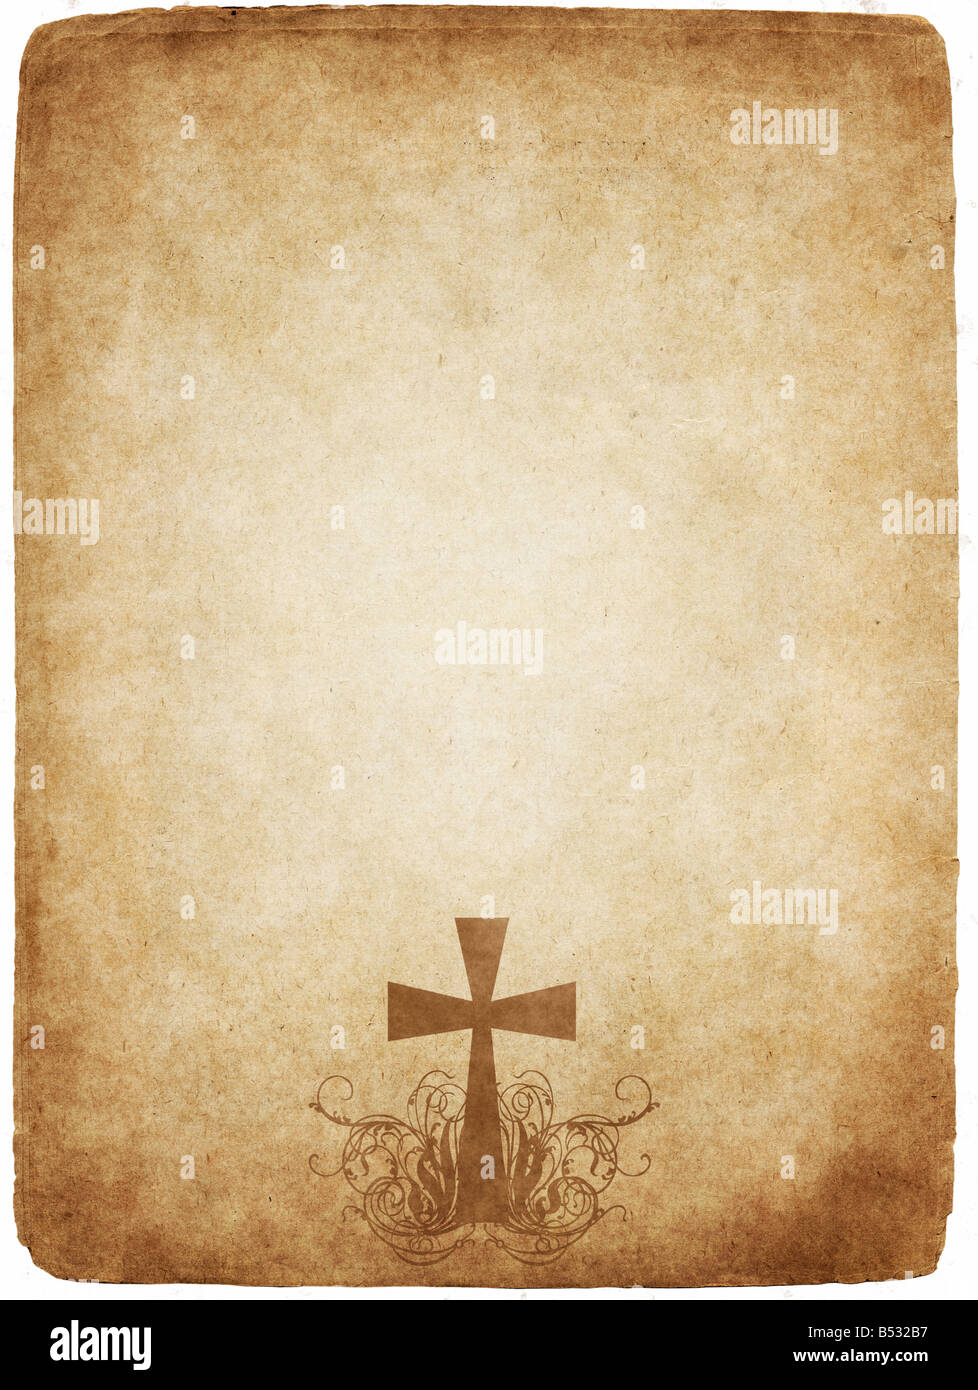 cross on old worn and grungy parchment paper - Stock Image